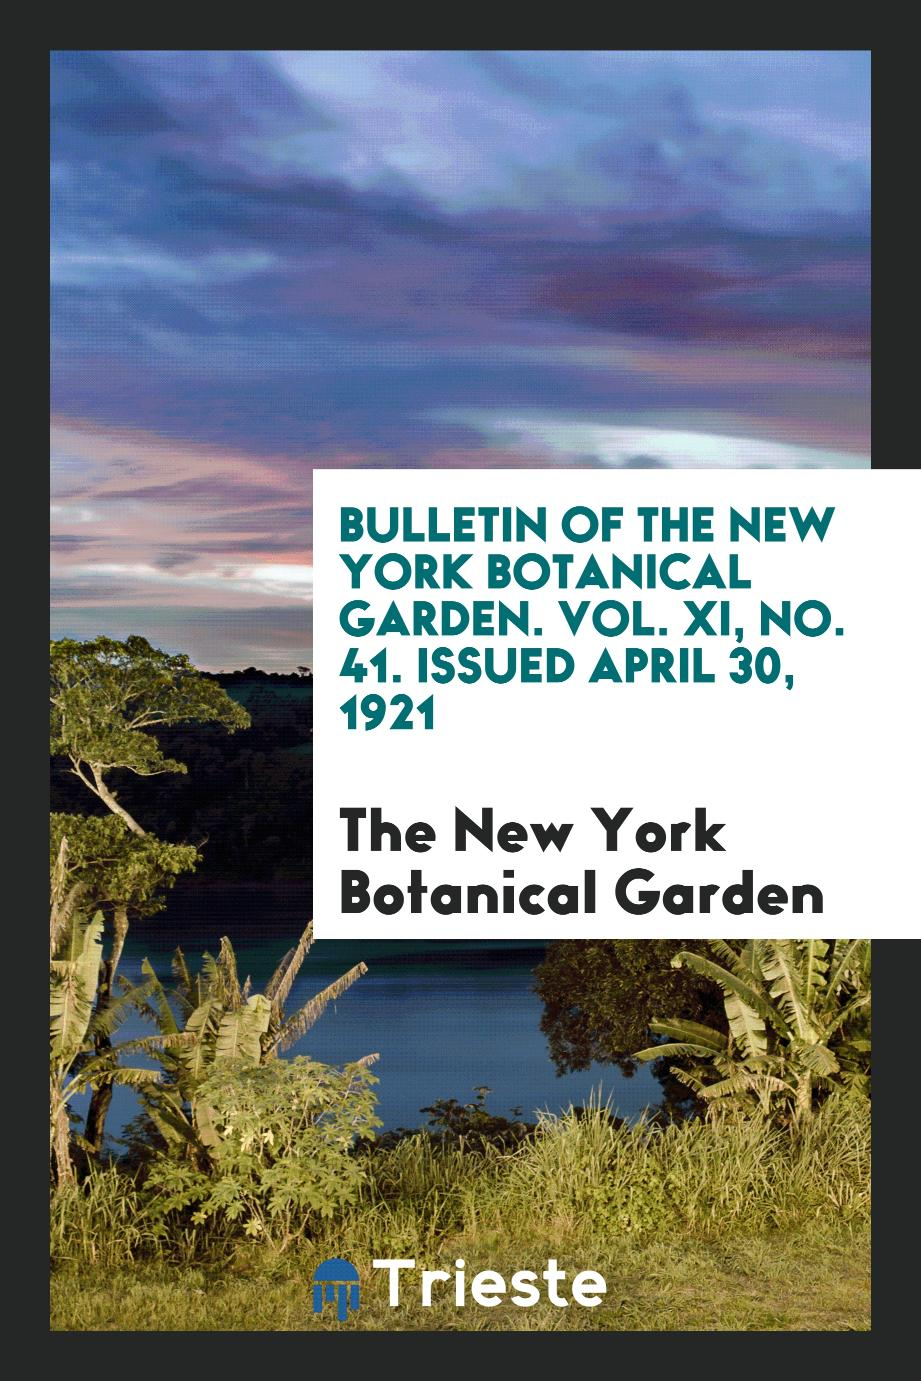 Bulletin of the New York Botanical Garden. Vol. XI, No. 41. Issued April 30, 1921